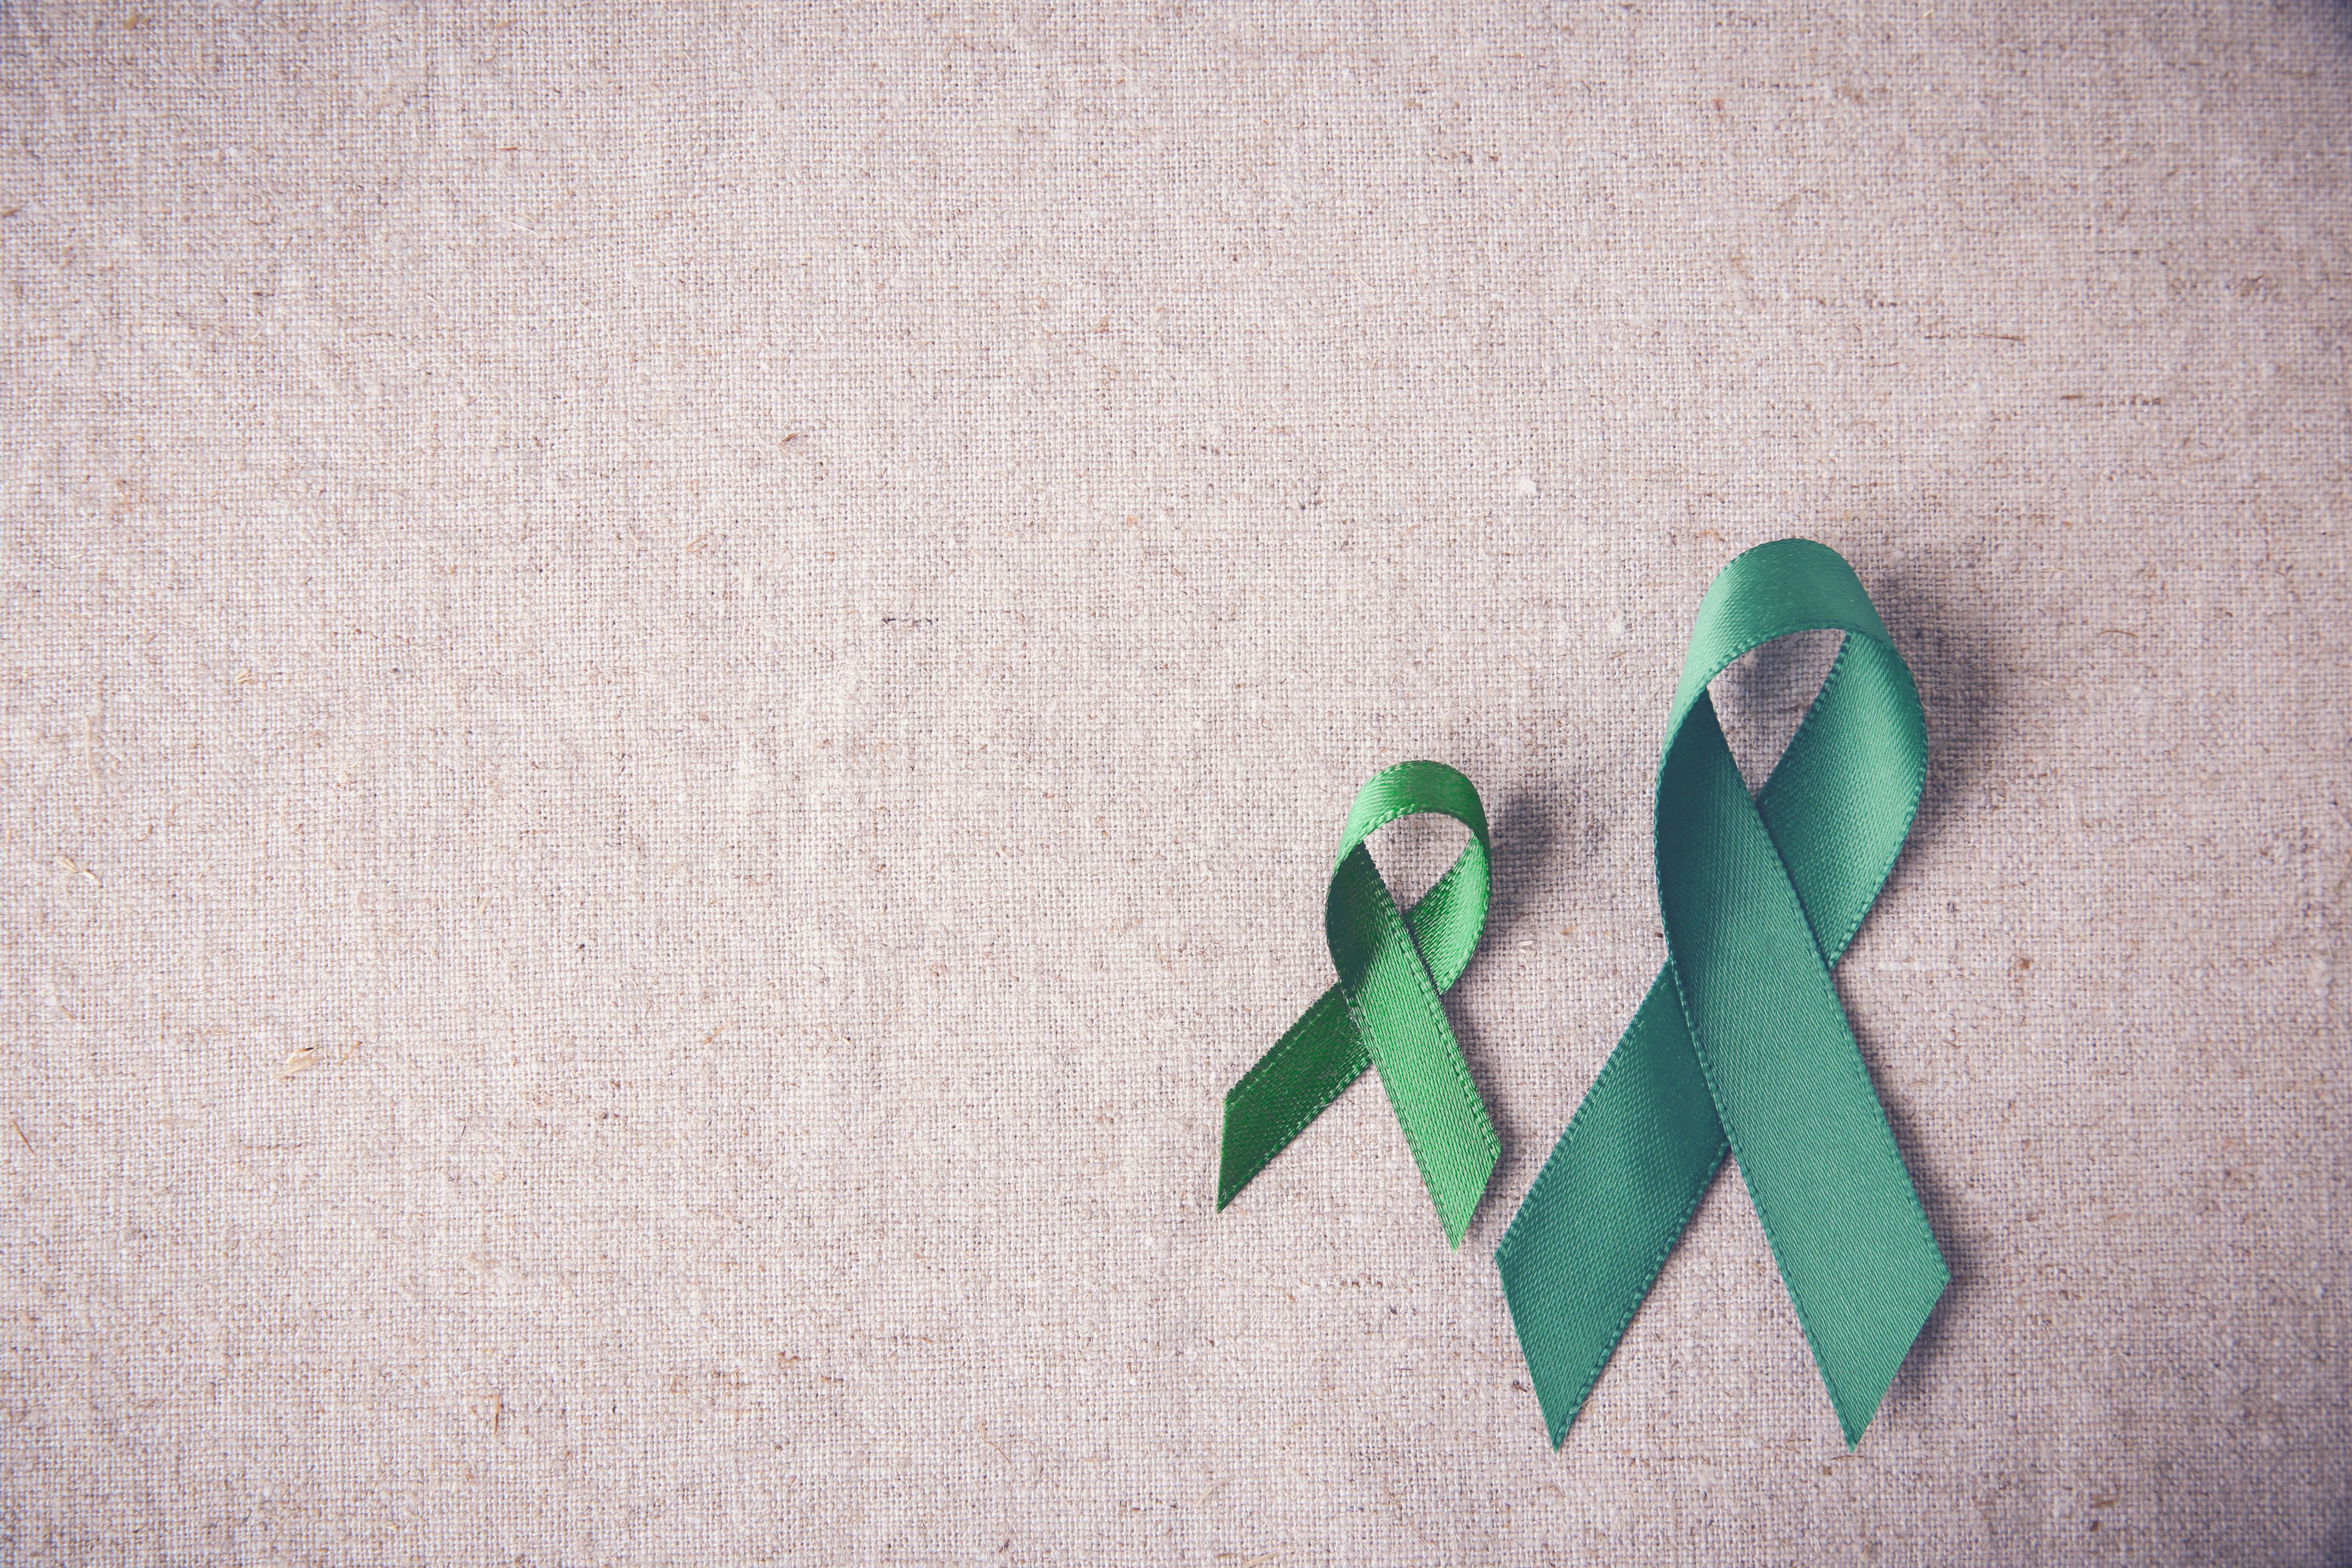 Green Ribbons copy space toning background, cancer awareness, Liver, kidney cancer awareness